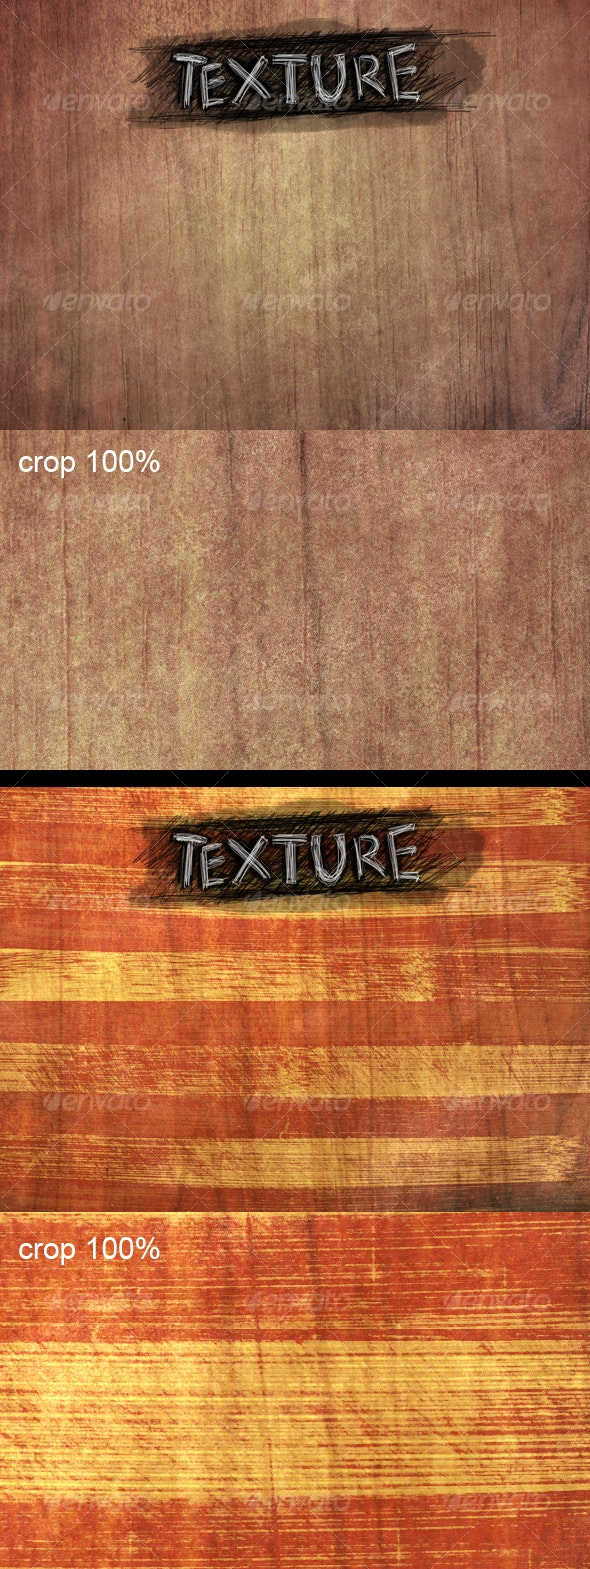 Two Wooden Backgrounds - Wood Textures